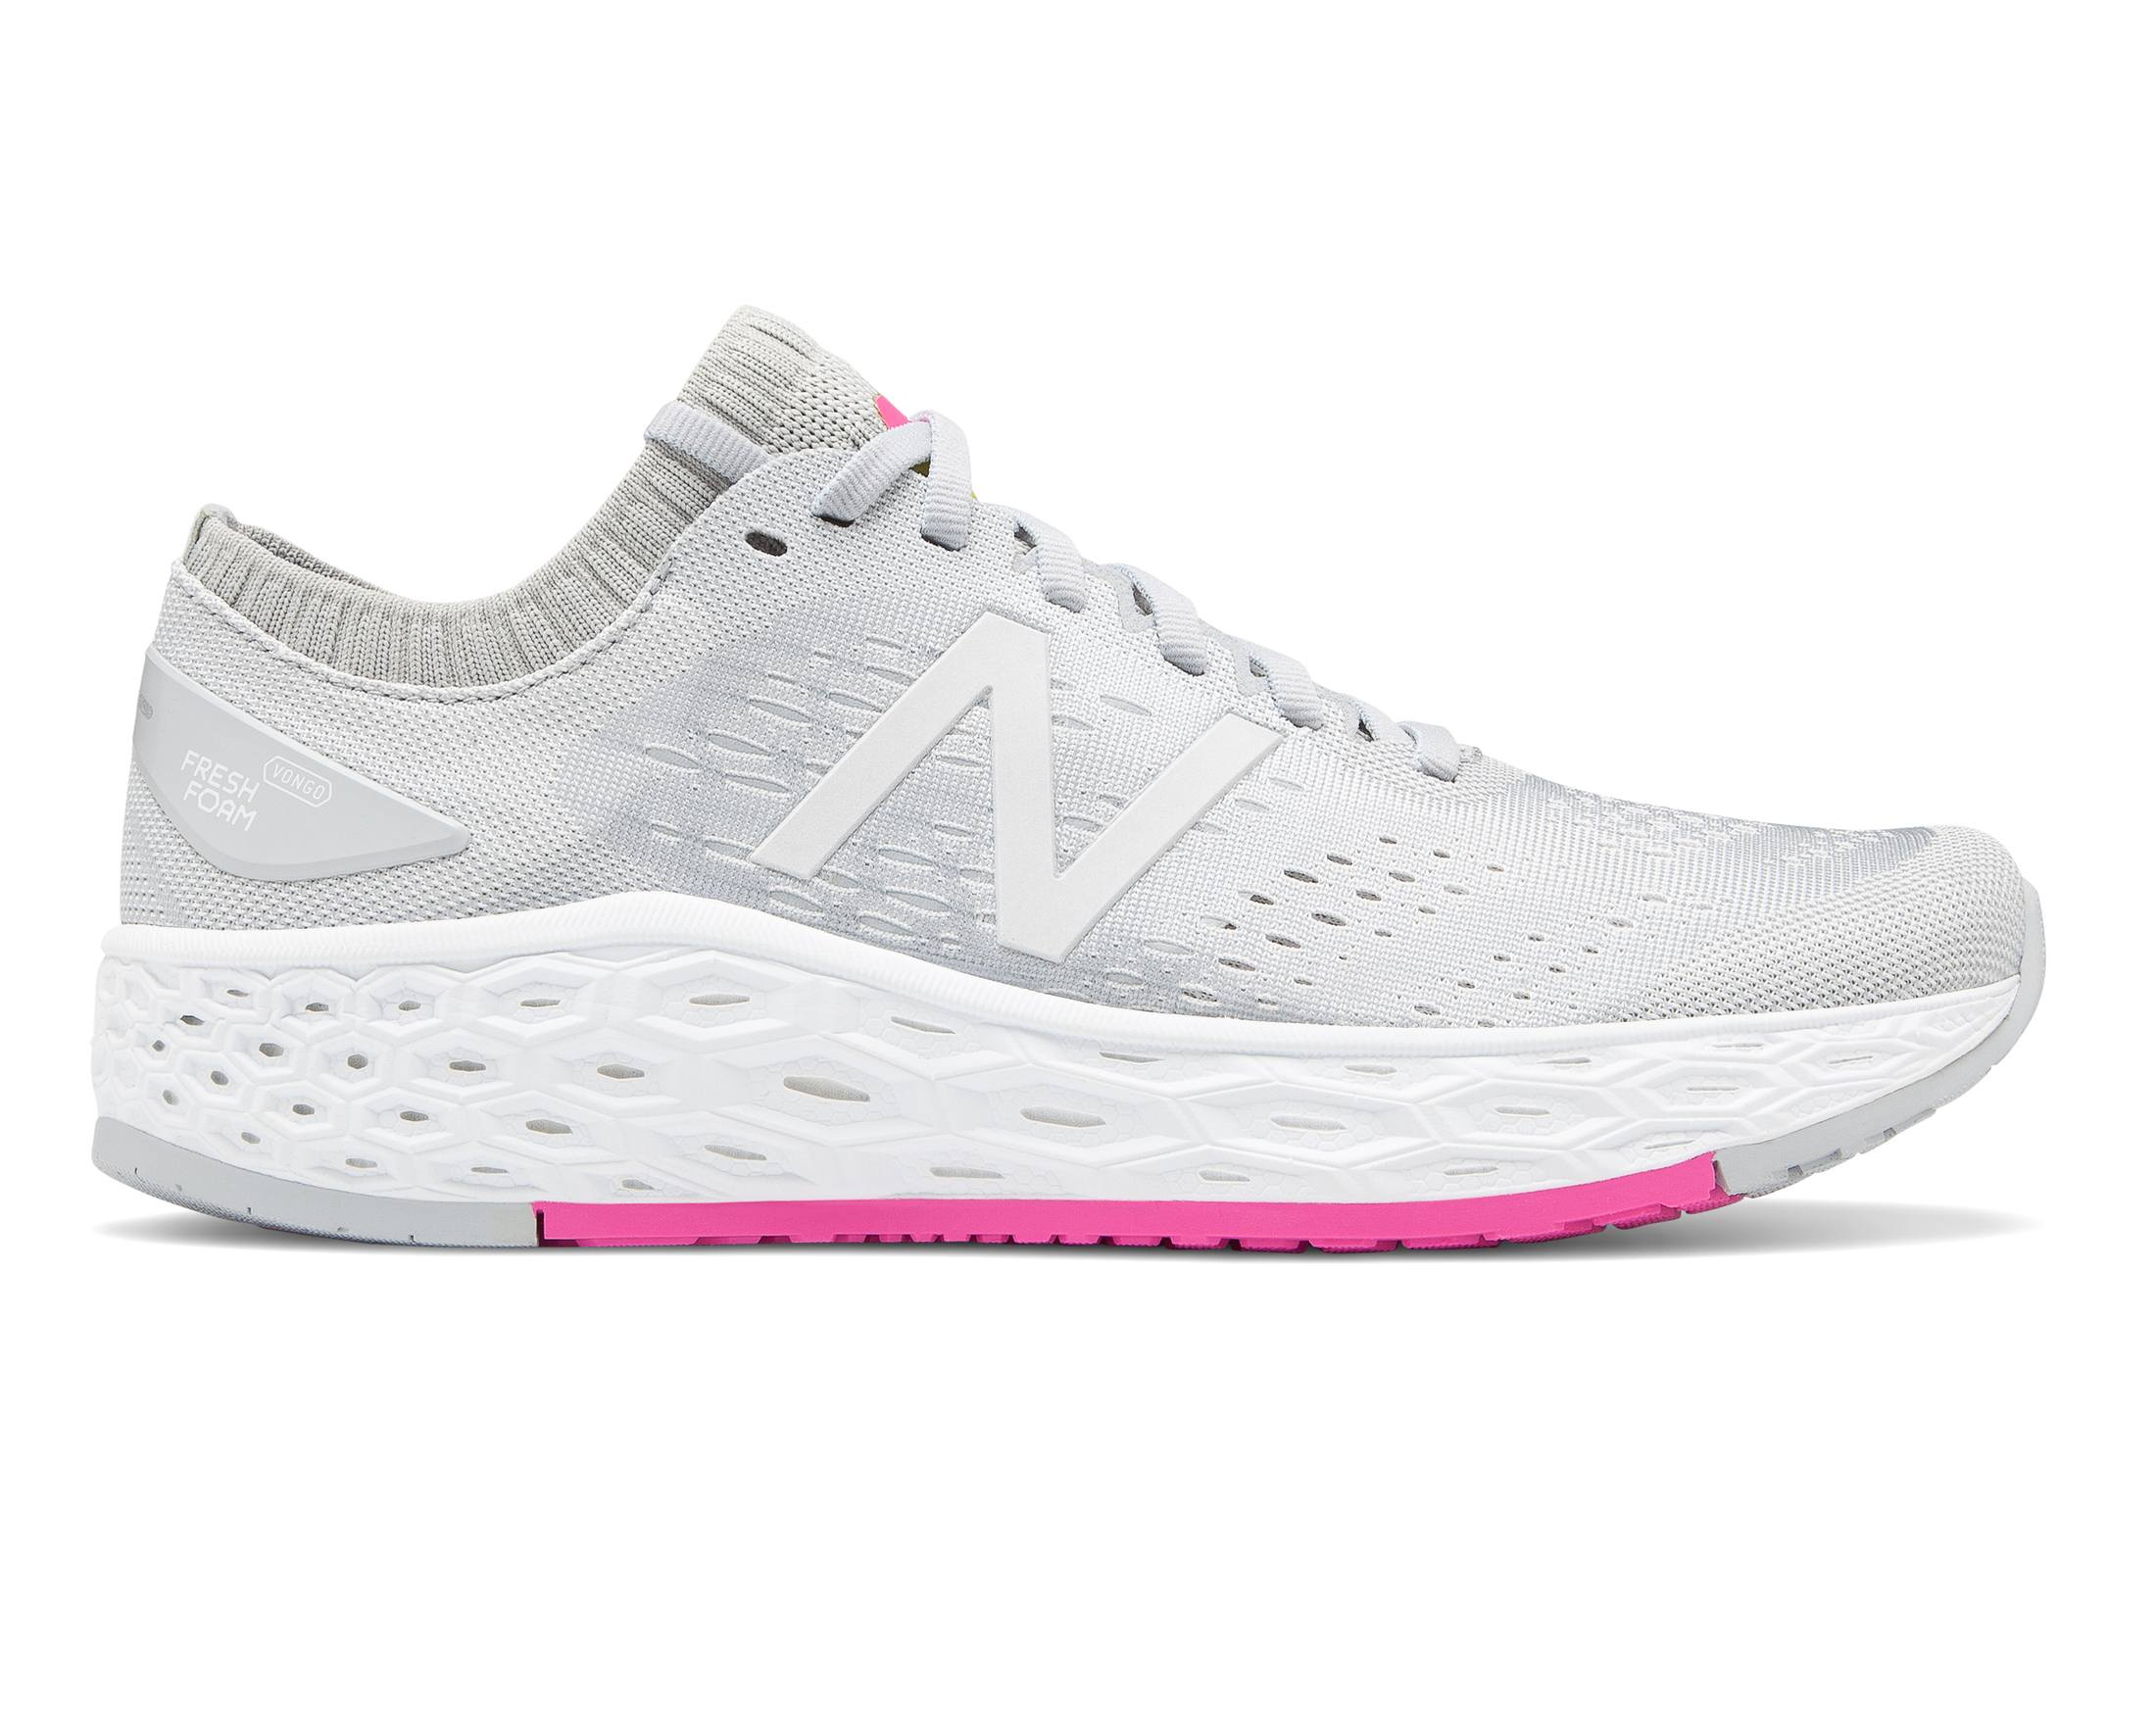 detailed look 1480e 69b62 Experts round up the best running shoes for flat feet | Well ...